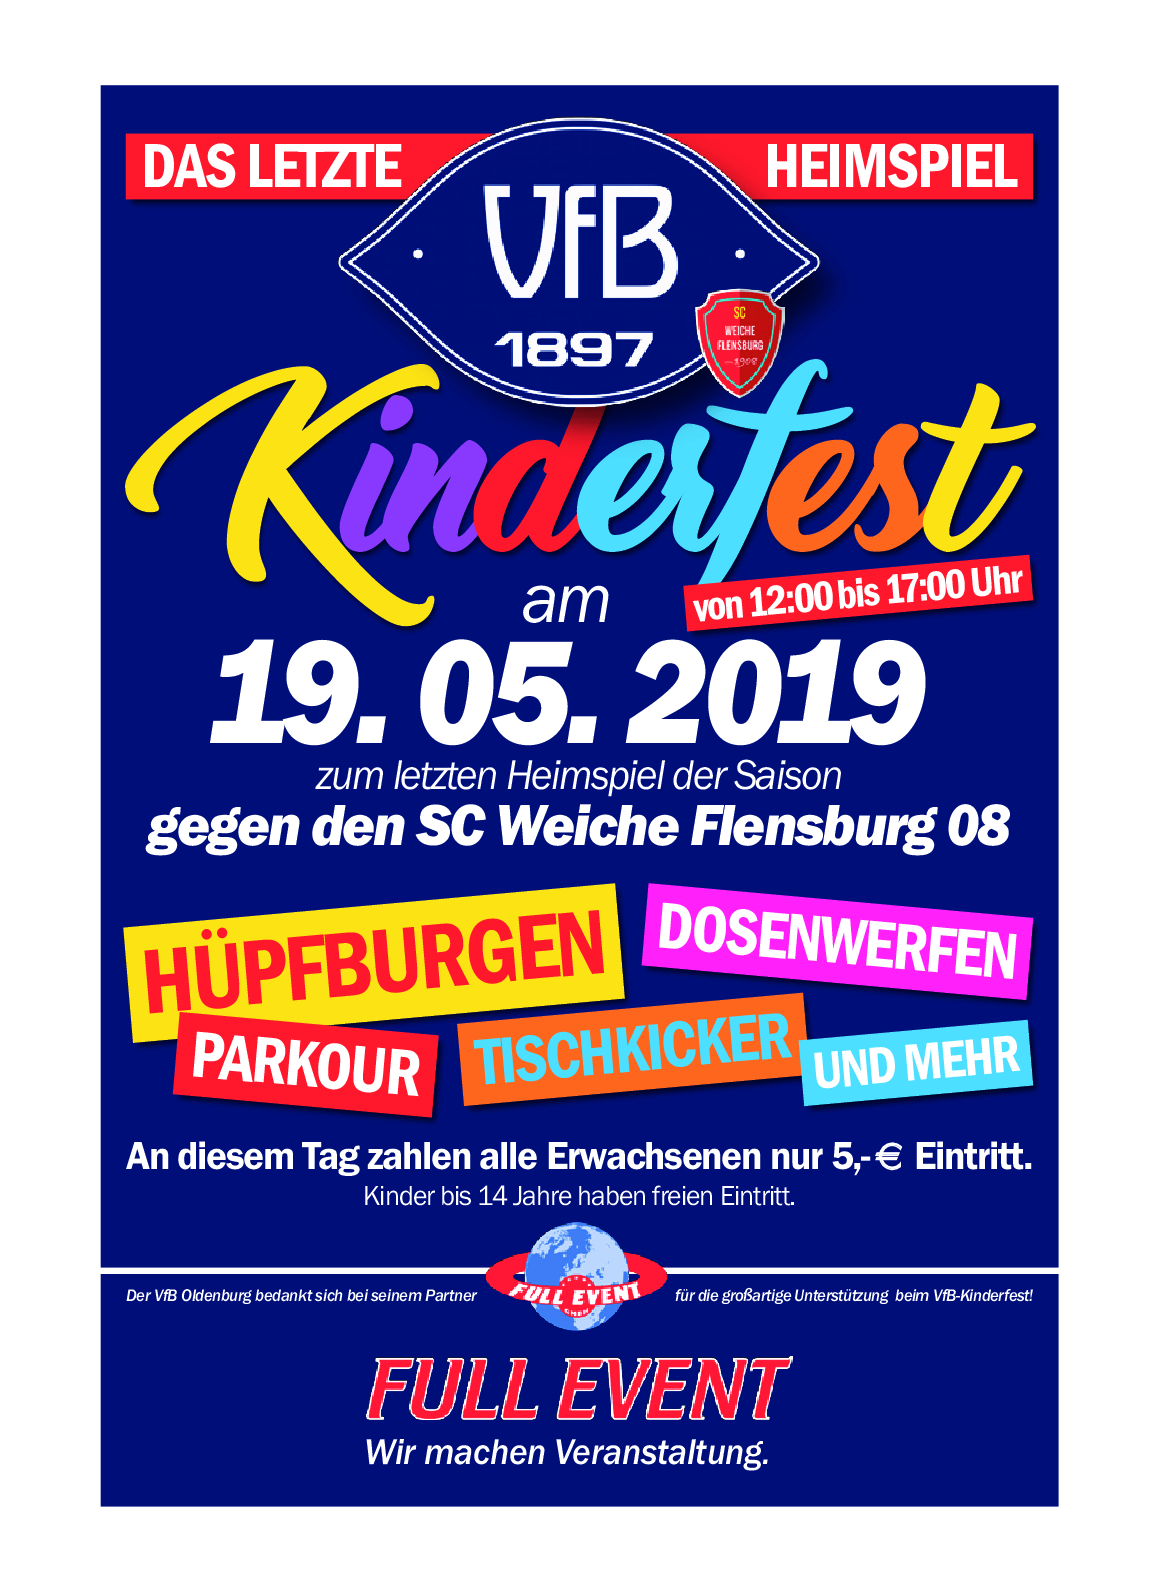 https://vfb-oldenburg.de/wp-content/uploads/VfB_34_Spieltag_2018_2019-pdf.jpg